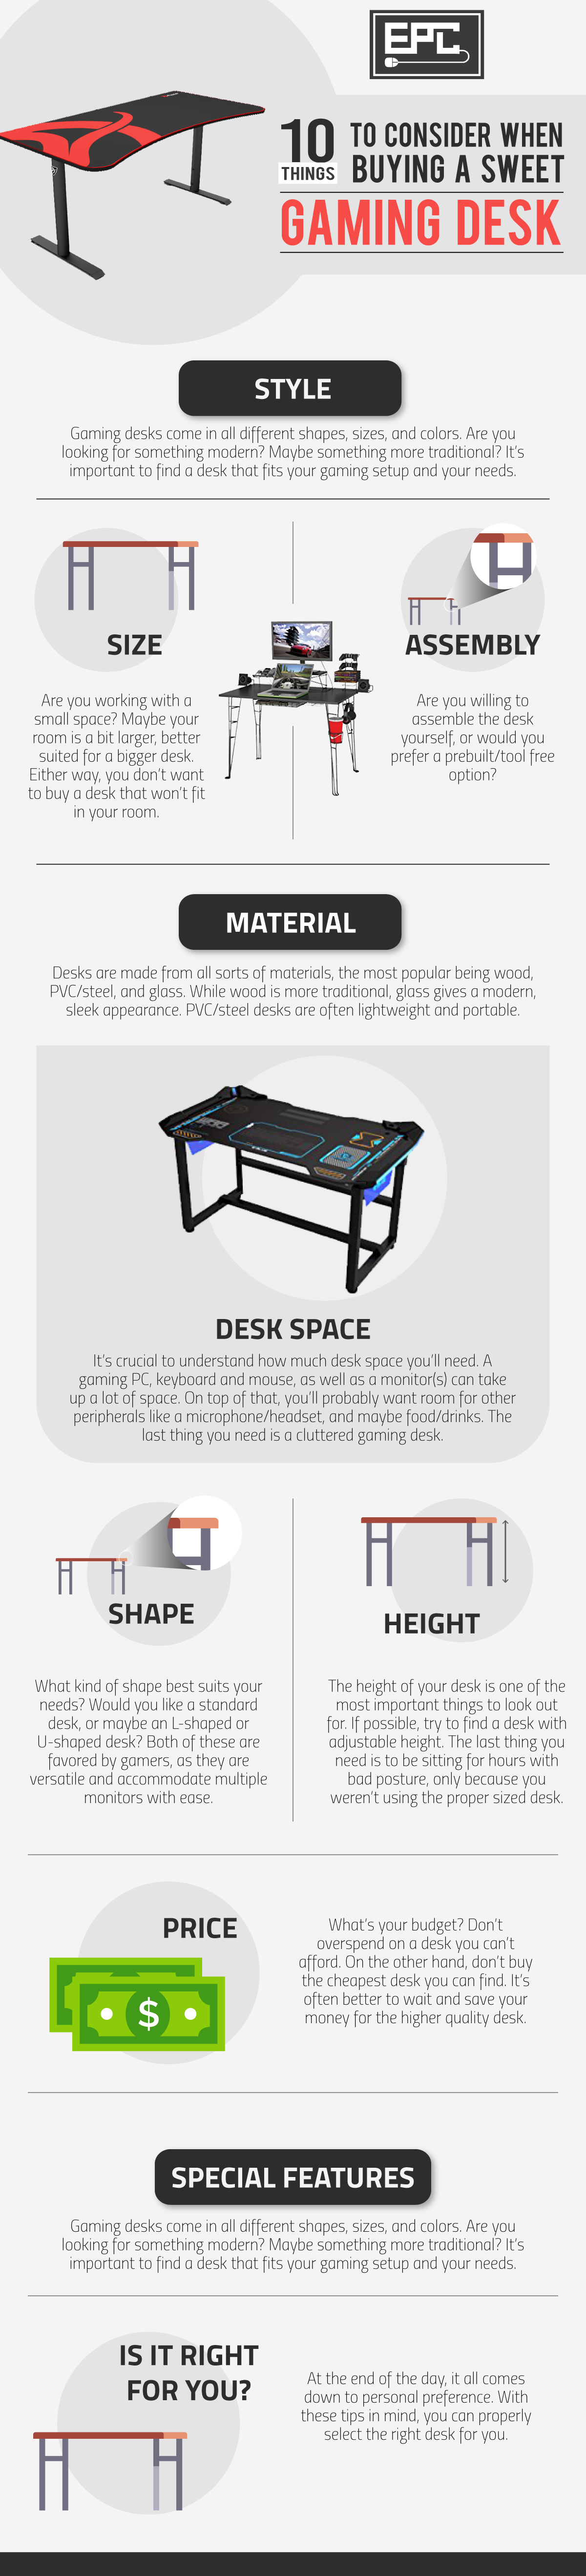 build corner simple beautiful most study gaming small desk tremendous computer desktop